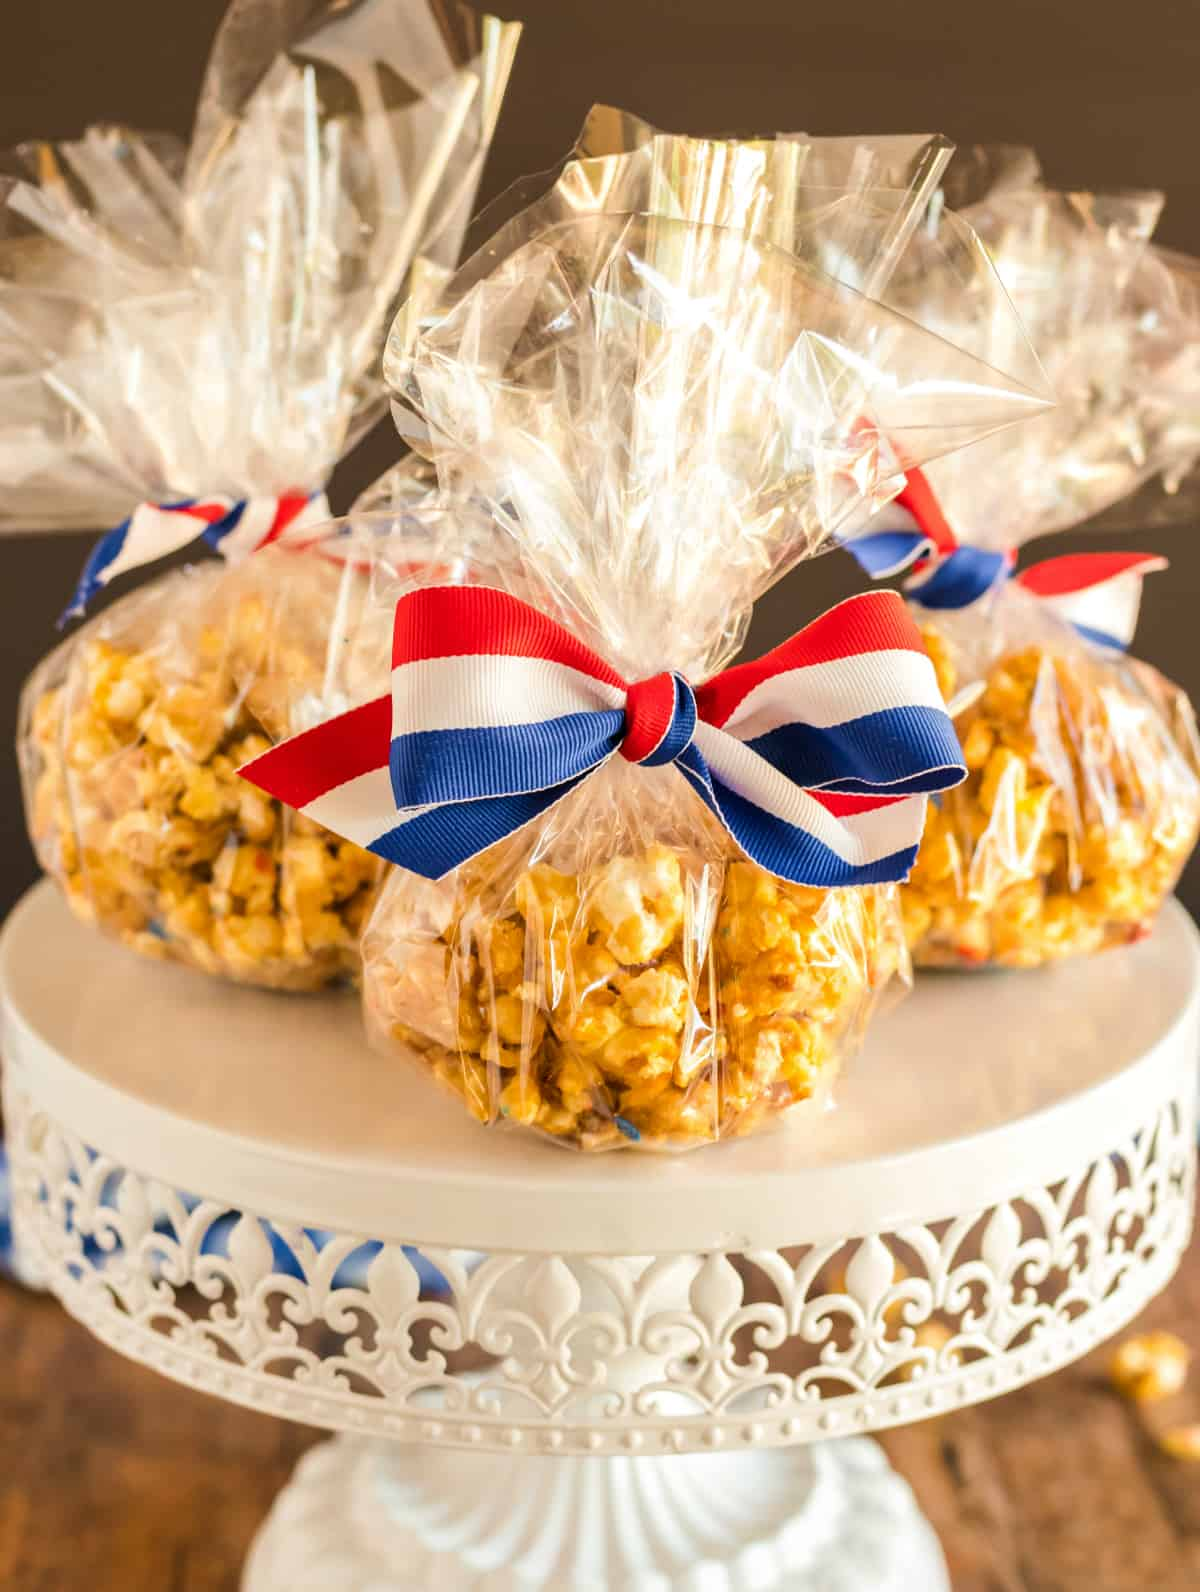 Bags of popcorn on cake stand